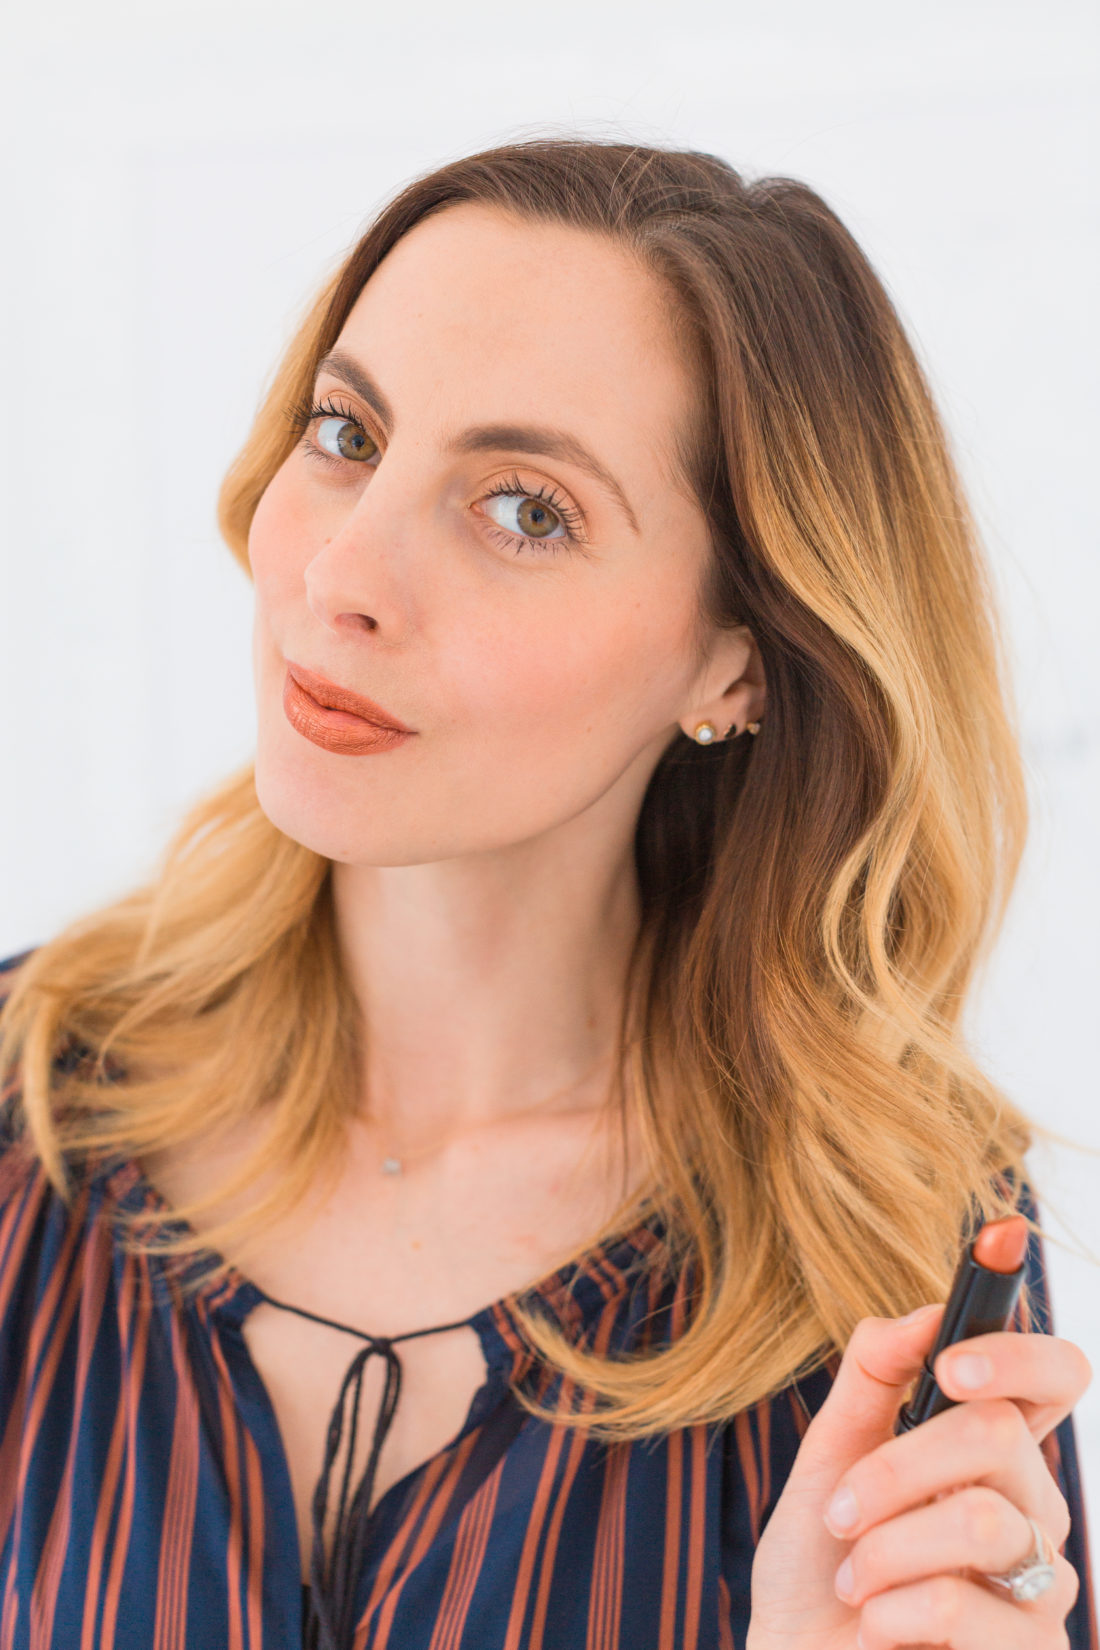 Eva Amurri Martino wears a coppery metallic lipstick as part of her monthly obsessions roundup